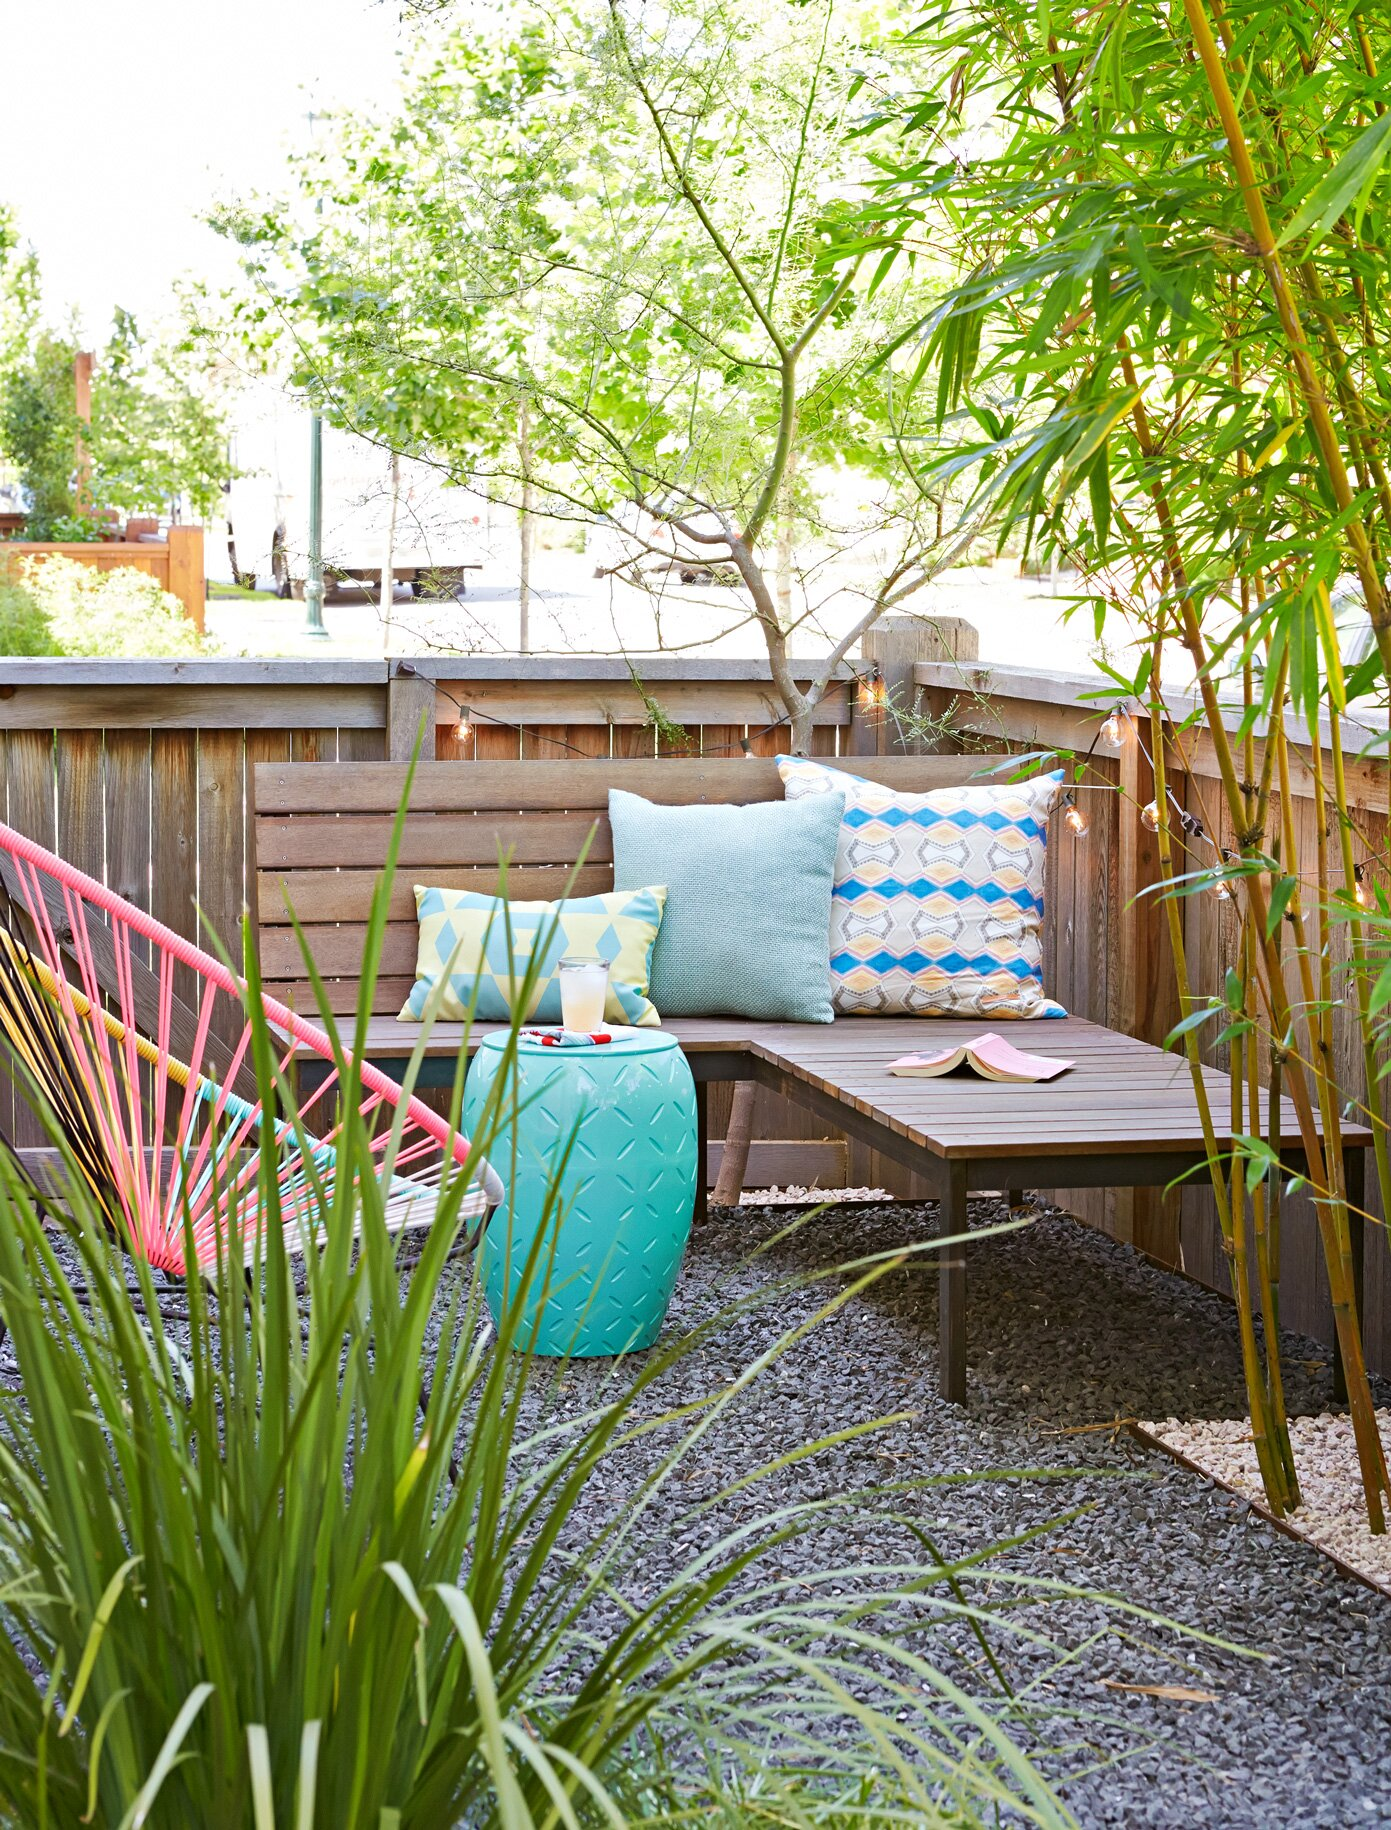 Cheap Backyard Ideas | Better Homes & Gardens on master suite ideas for home, summer for home, library ideas for home, halloween ideas for home, storage ideas for home, carpet ideas for home, fire pit for home, birthday ideas for home, plants ideas for home, spas for home, craft ideas for home, landscaping for home, fall ideas for home, backyard thanksgiving, room ideas for home, retaining walls for home, den ideas for home, office ideas for home, backyard inspirations, gardening for home,